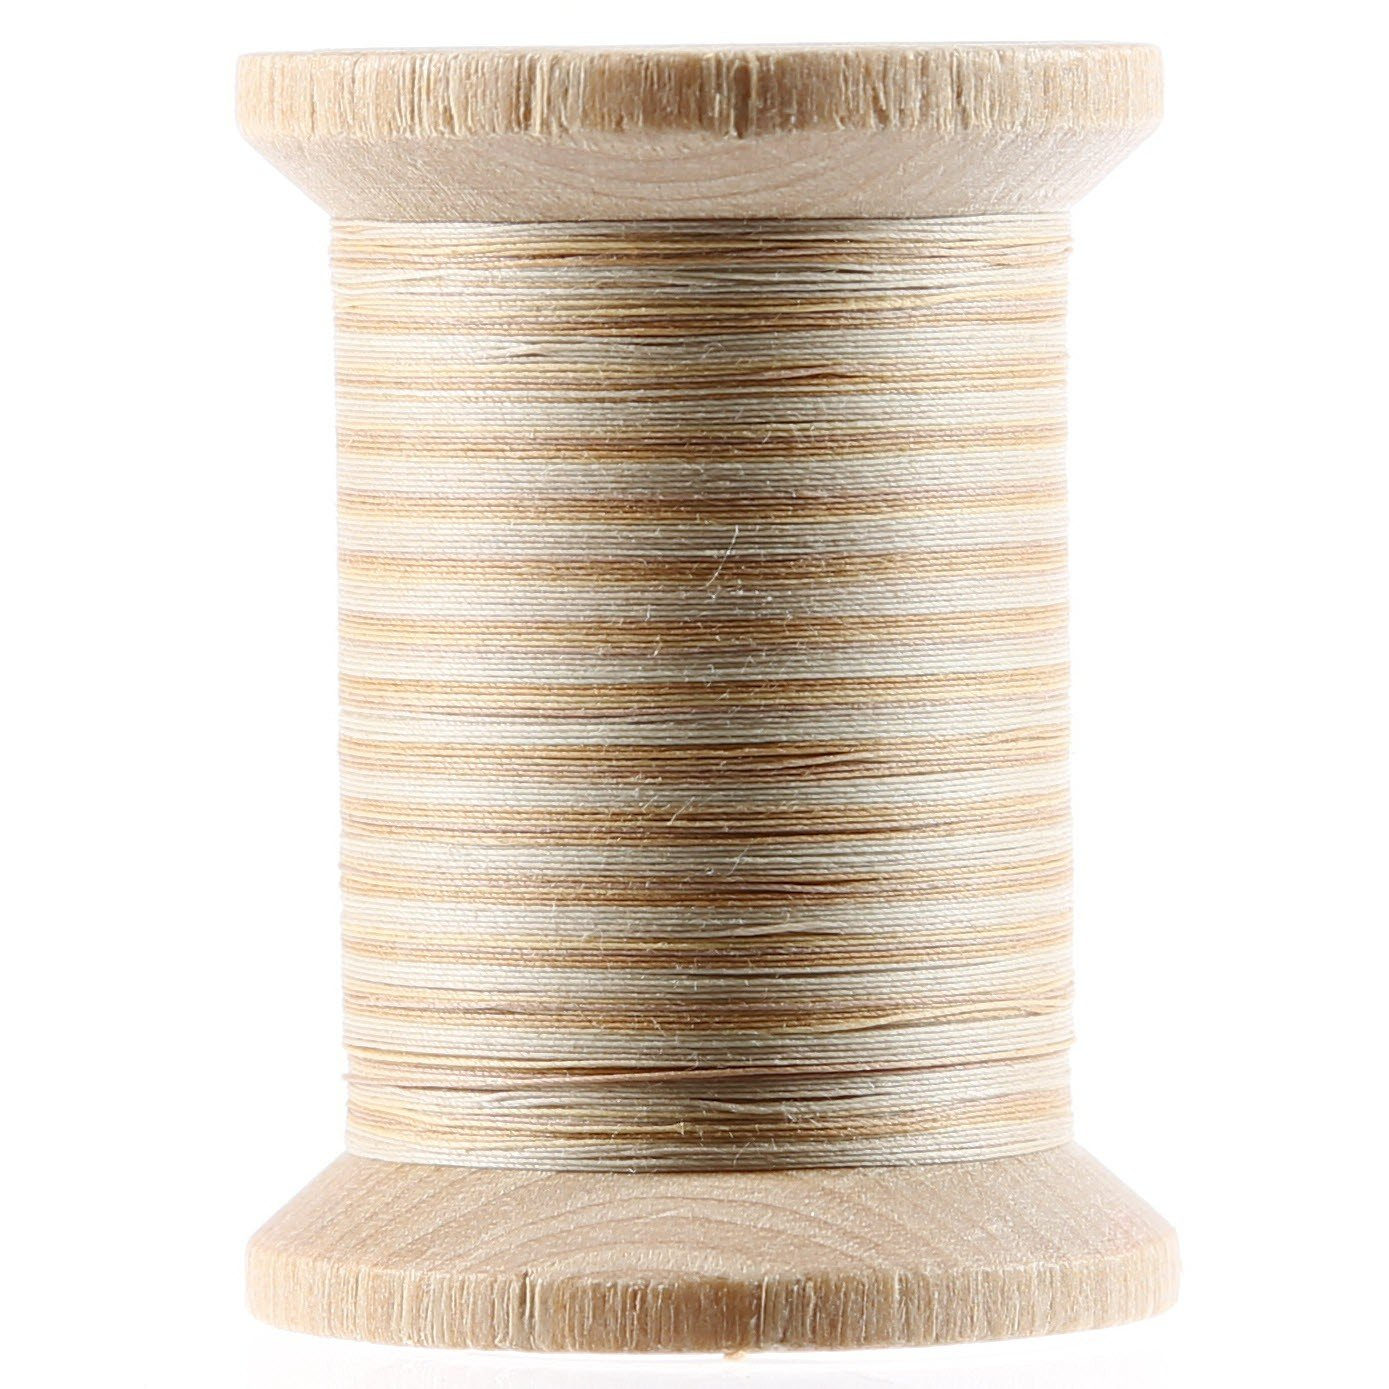 Variegated Cotton Hand Quilting Thread 400yds Pyramids